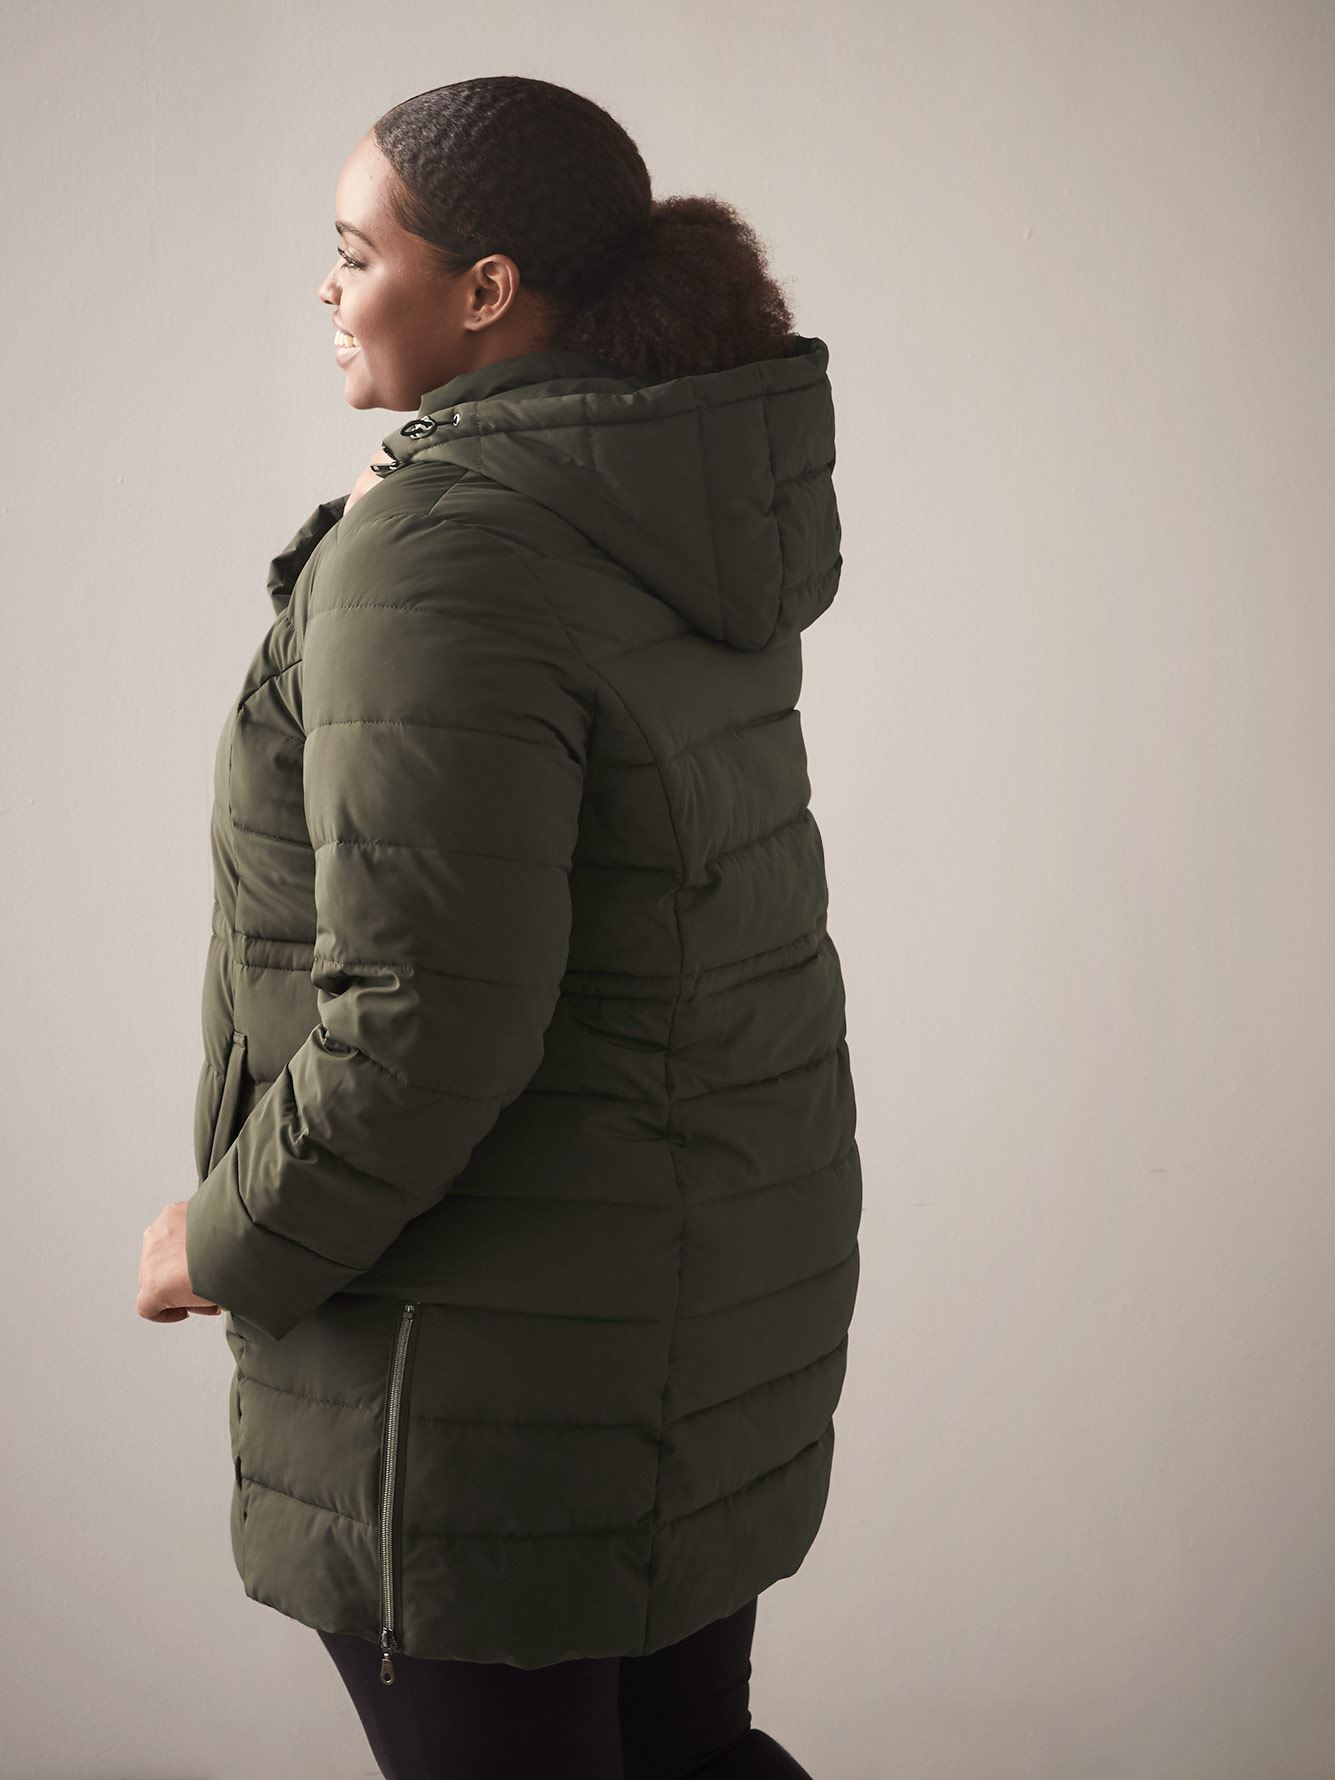 Manteau compressible en duvet synthétique - In Every Story